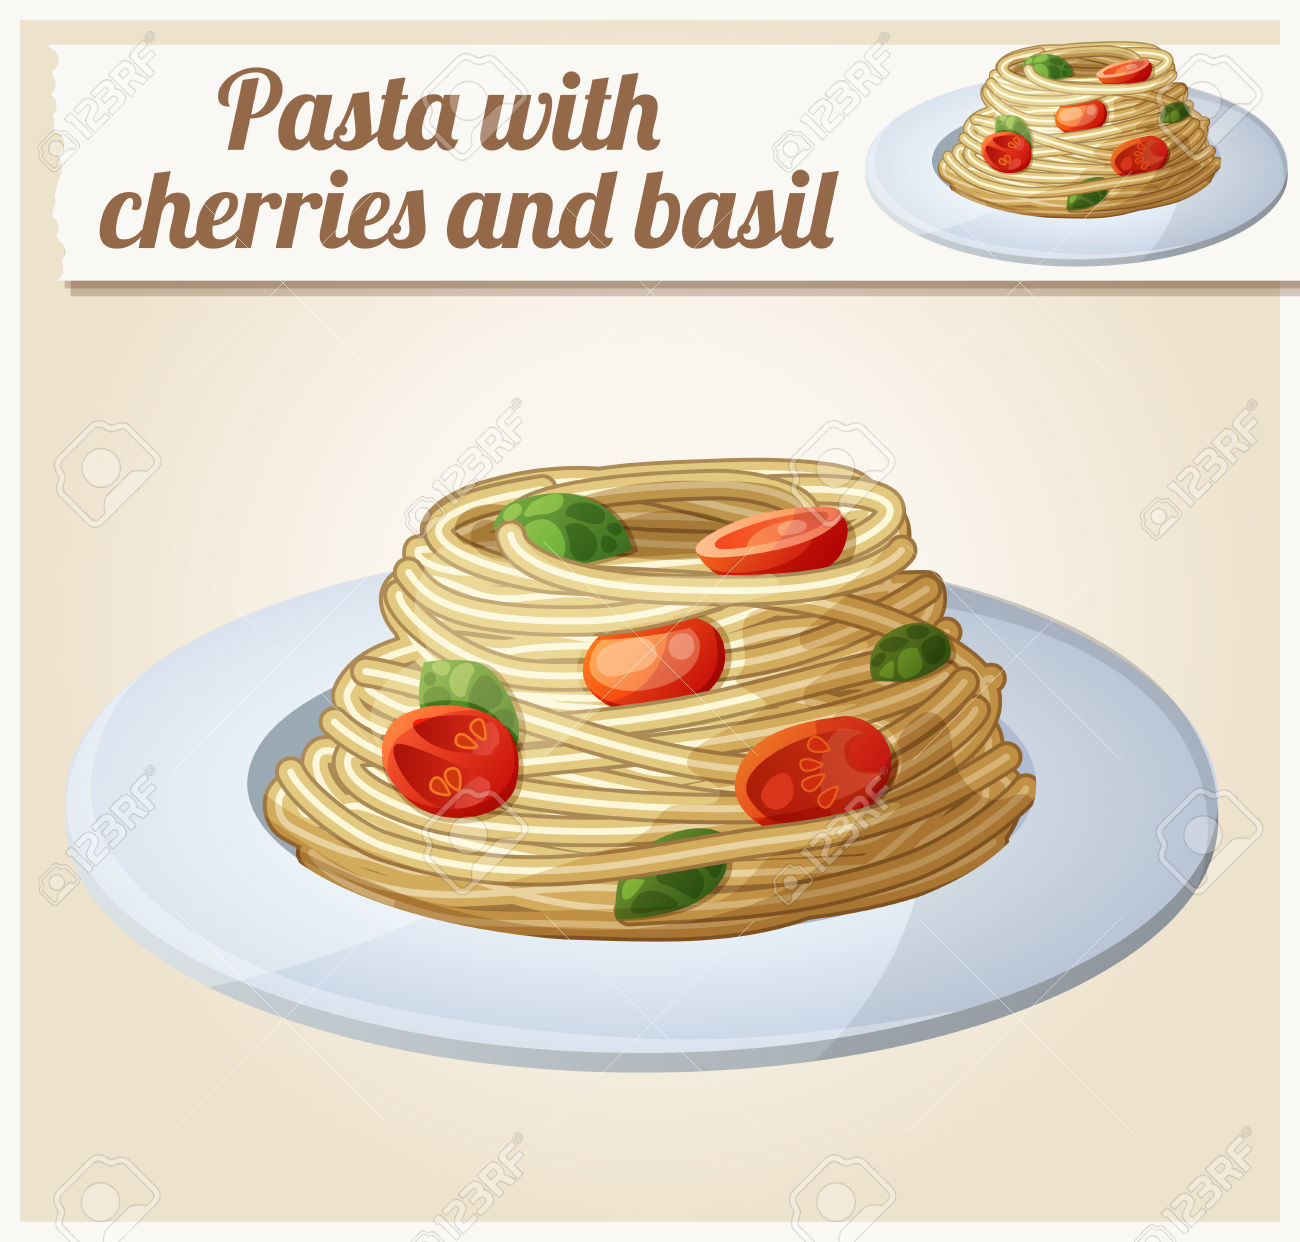 Spaghetti With Tomato Cherries And Meatballs. Series Of Food.